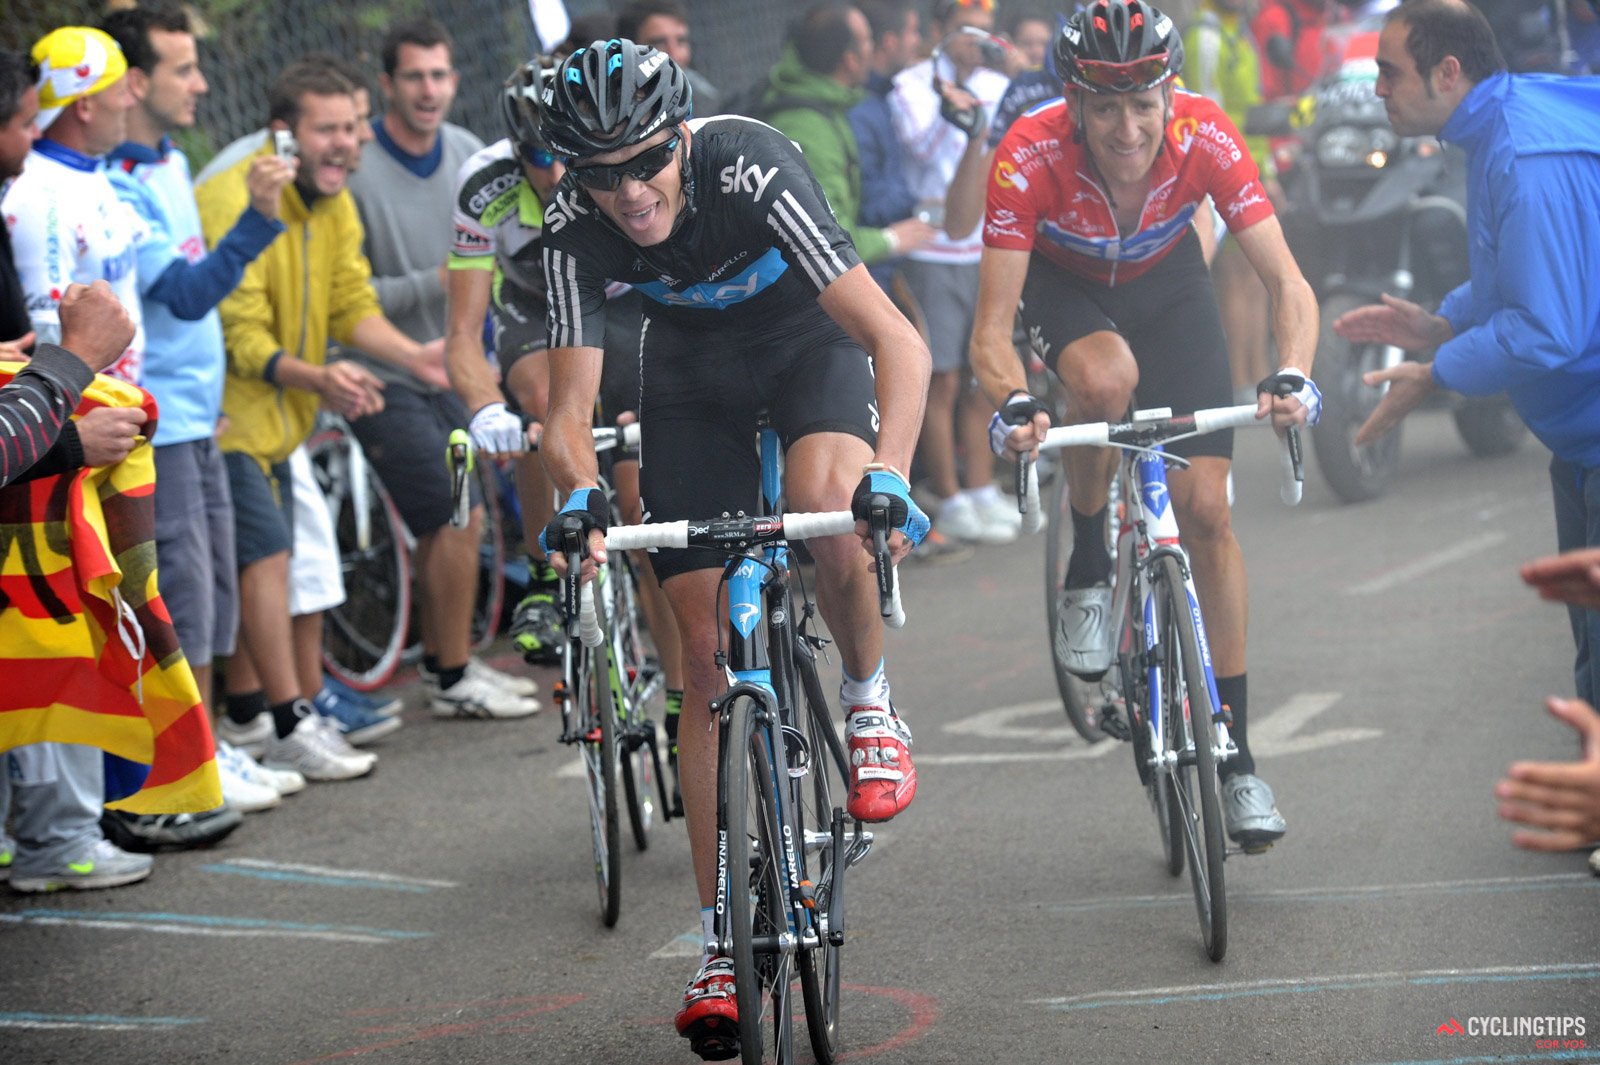 Nine years late, Chris Froome gets his Vuelta trophy